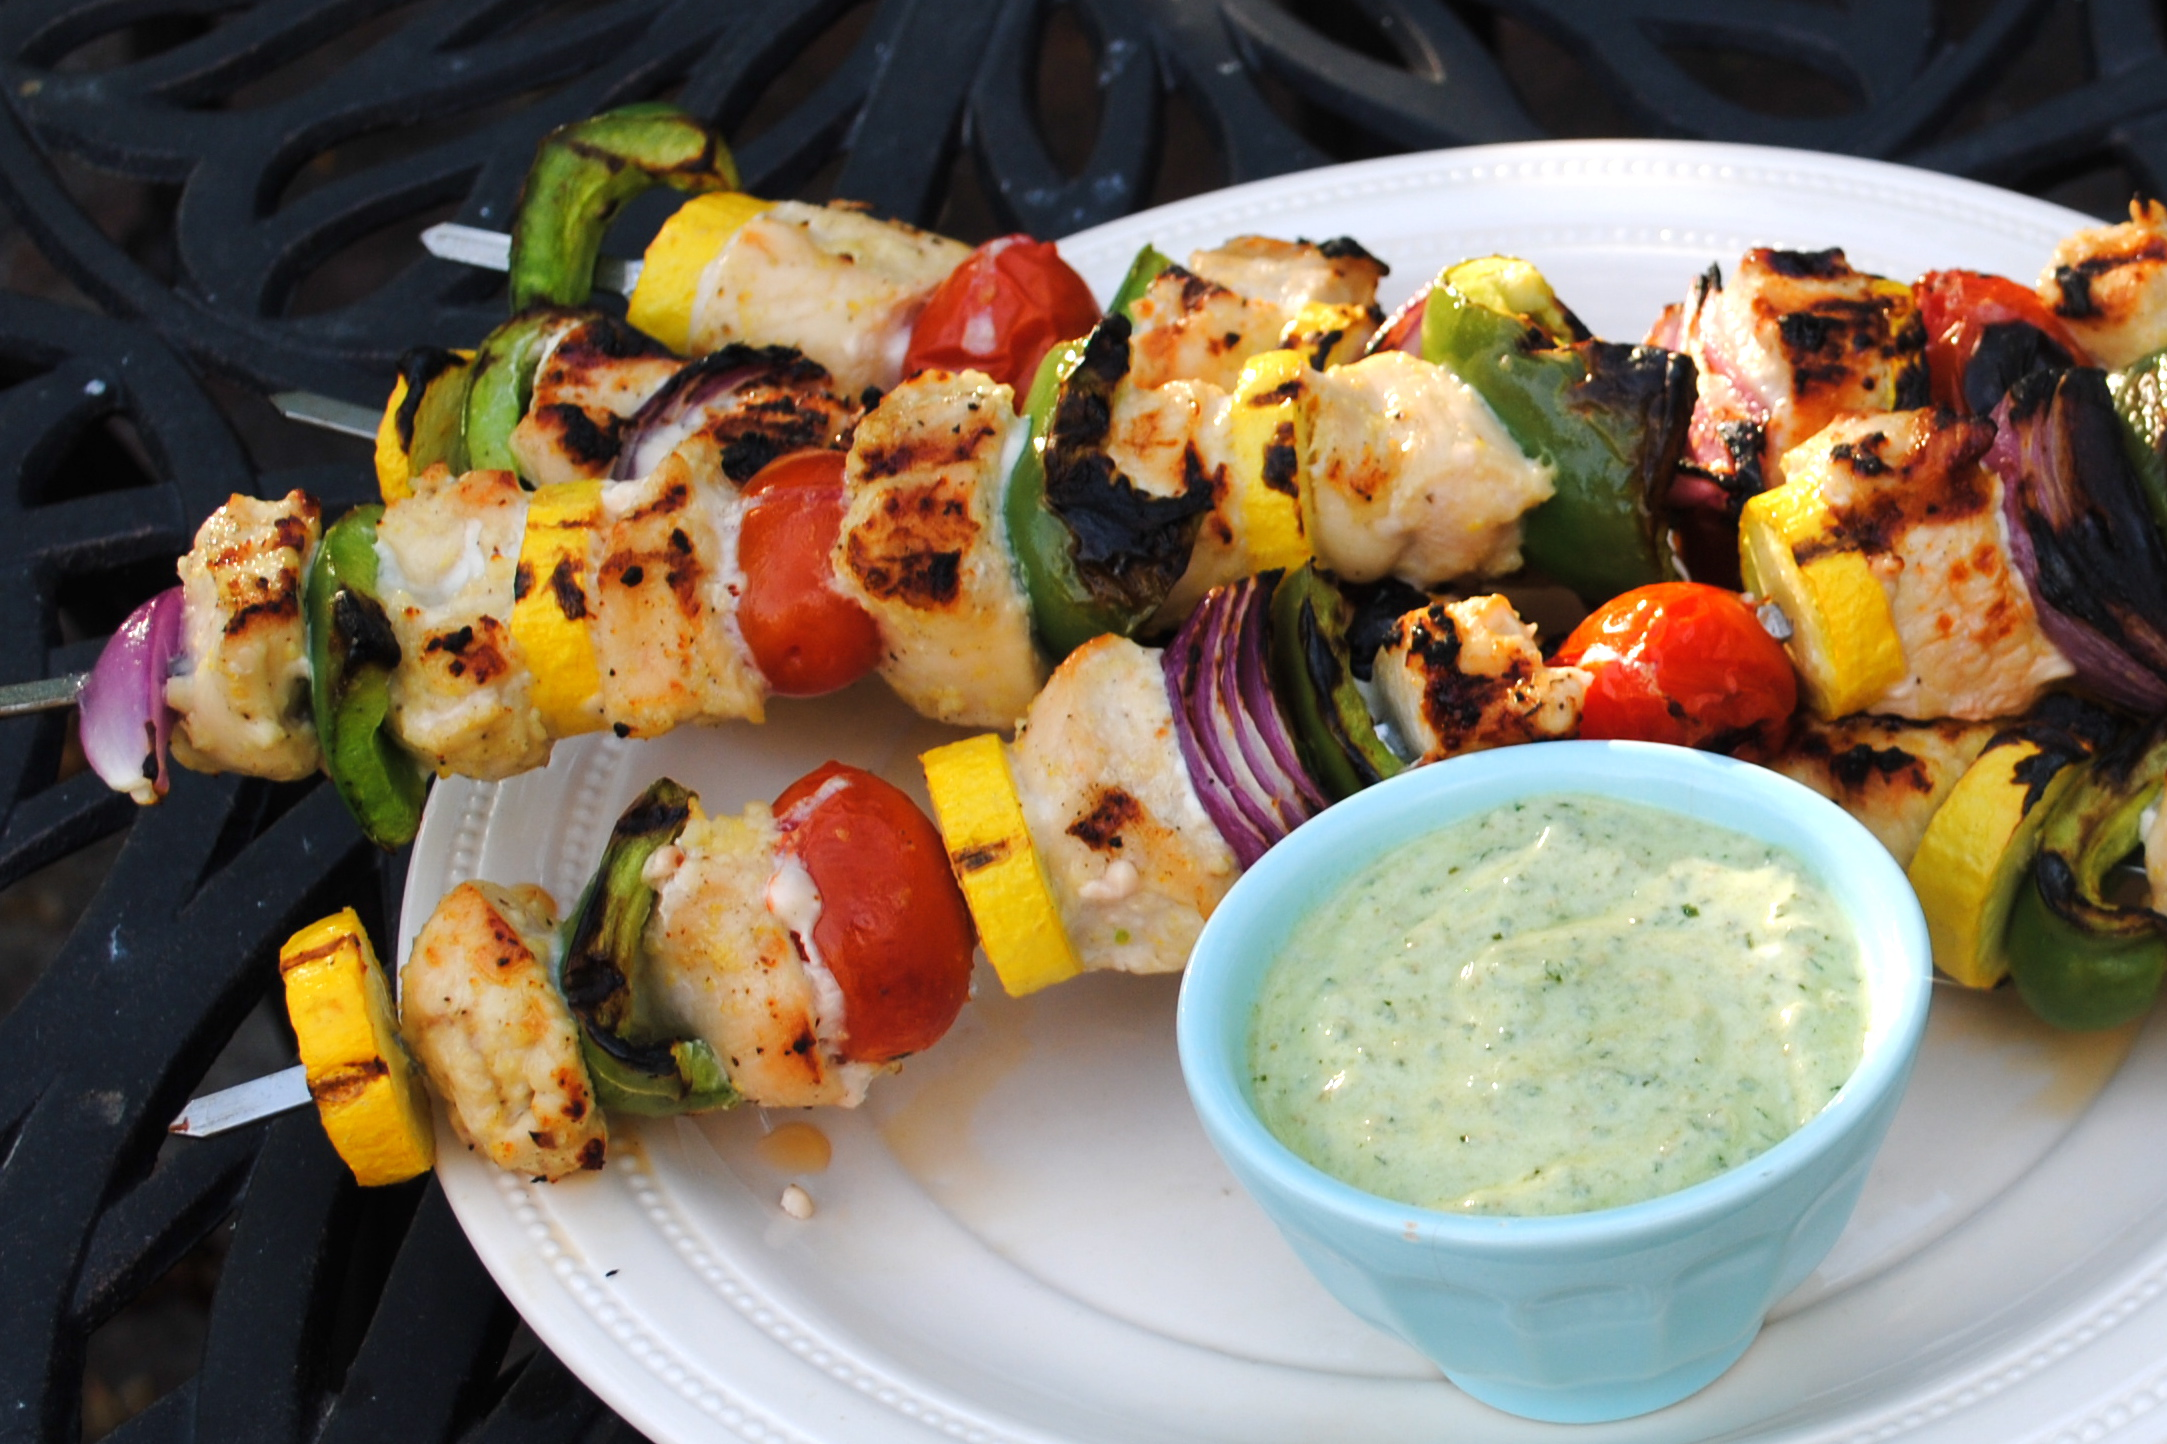 Chicken and Vegetable Kebabs with Creamy Pesto Dipping Sauce